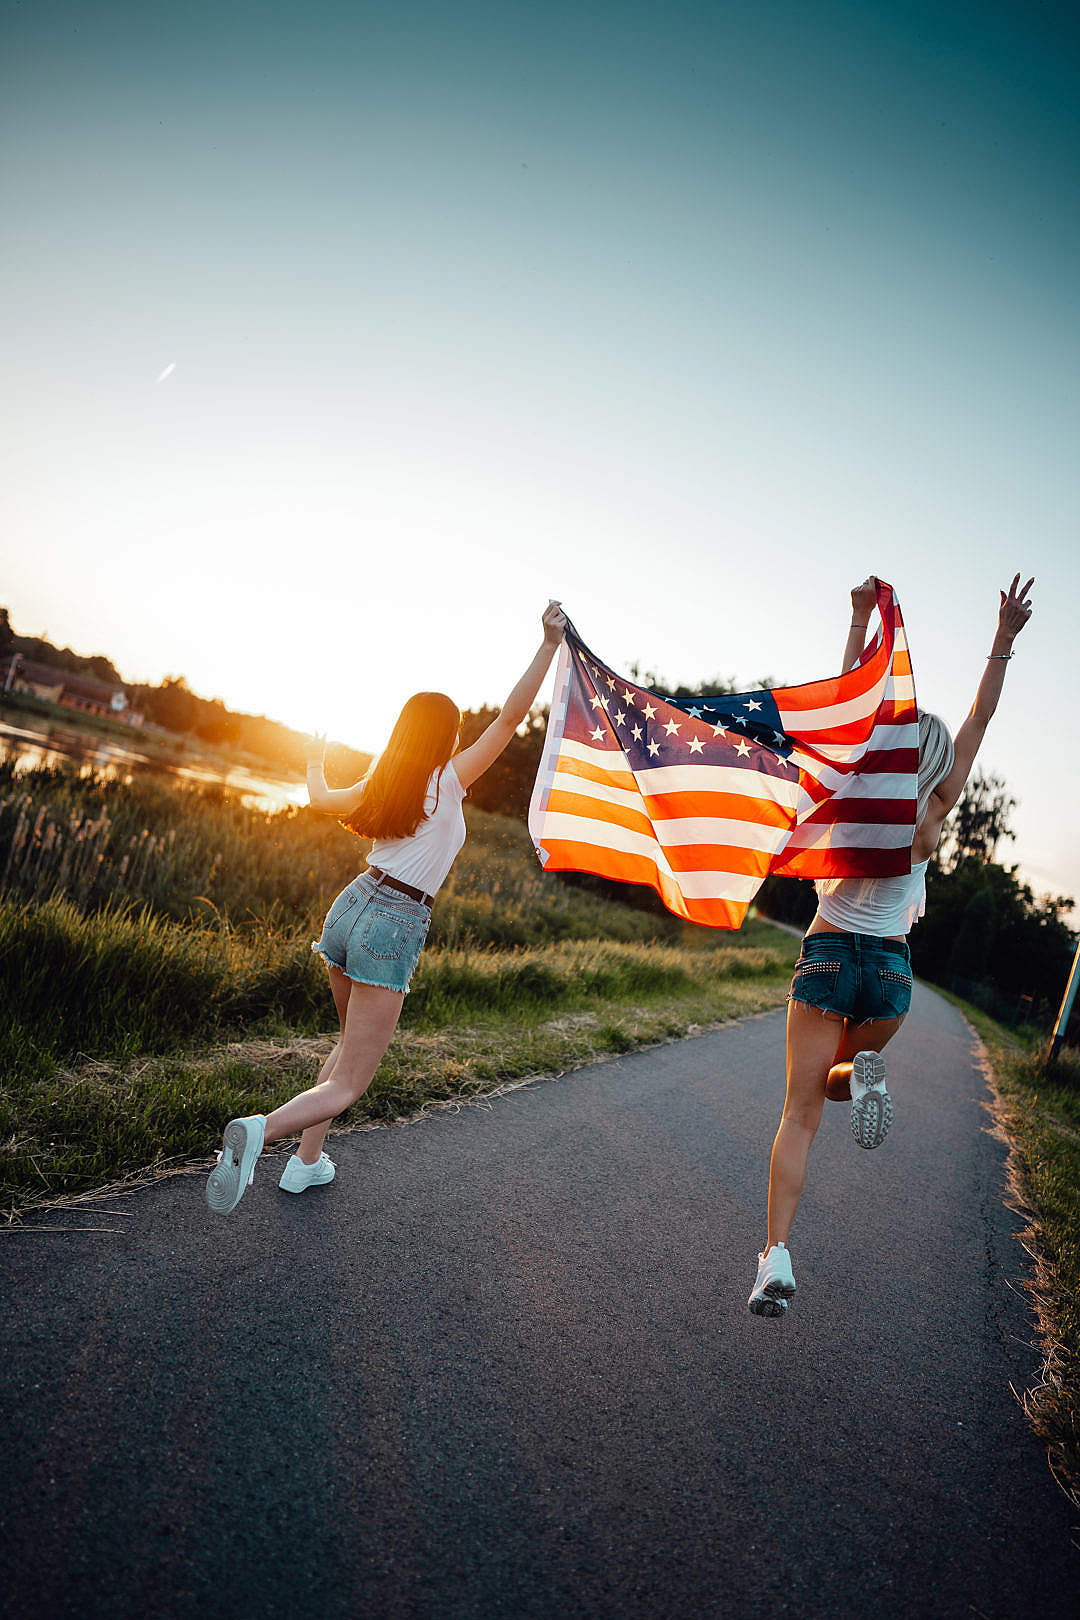 Download Girls Dancing with an American Flag FREE Stock Photo